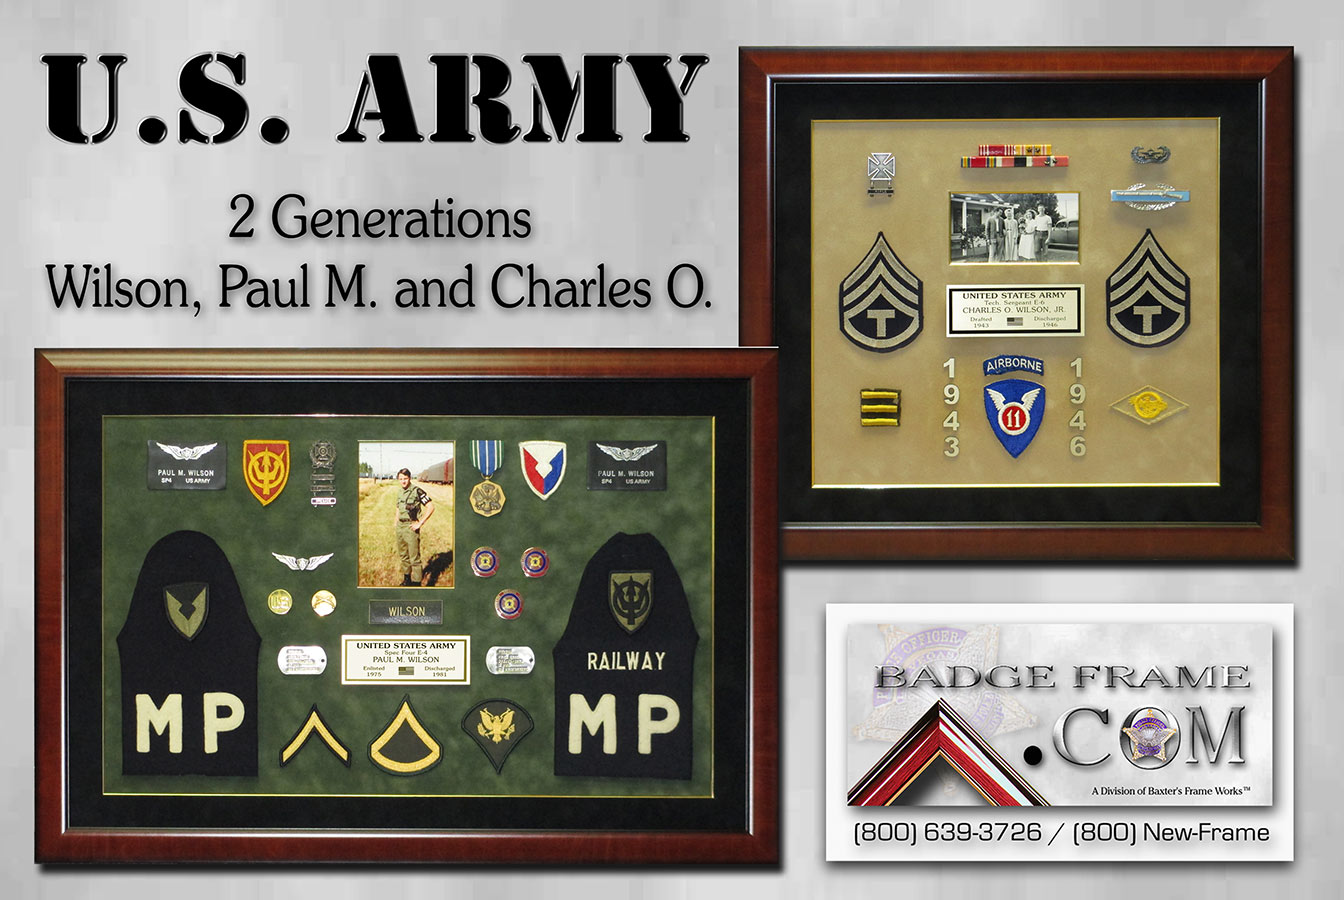 U.S. Army Shadowboxes from Badge Frame